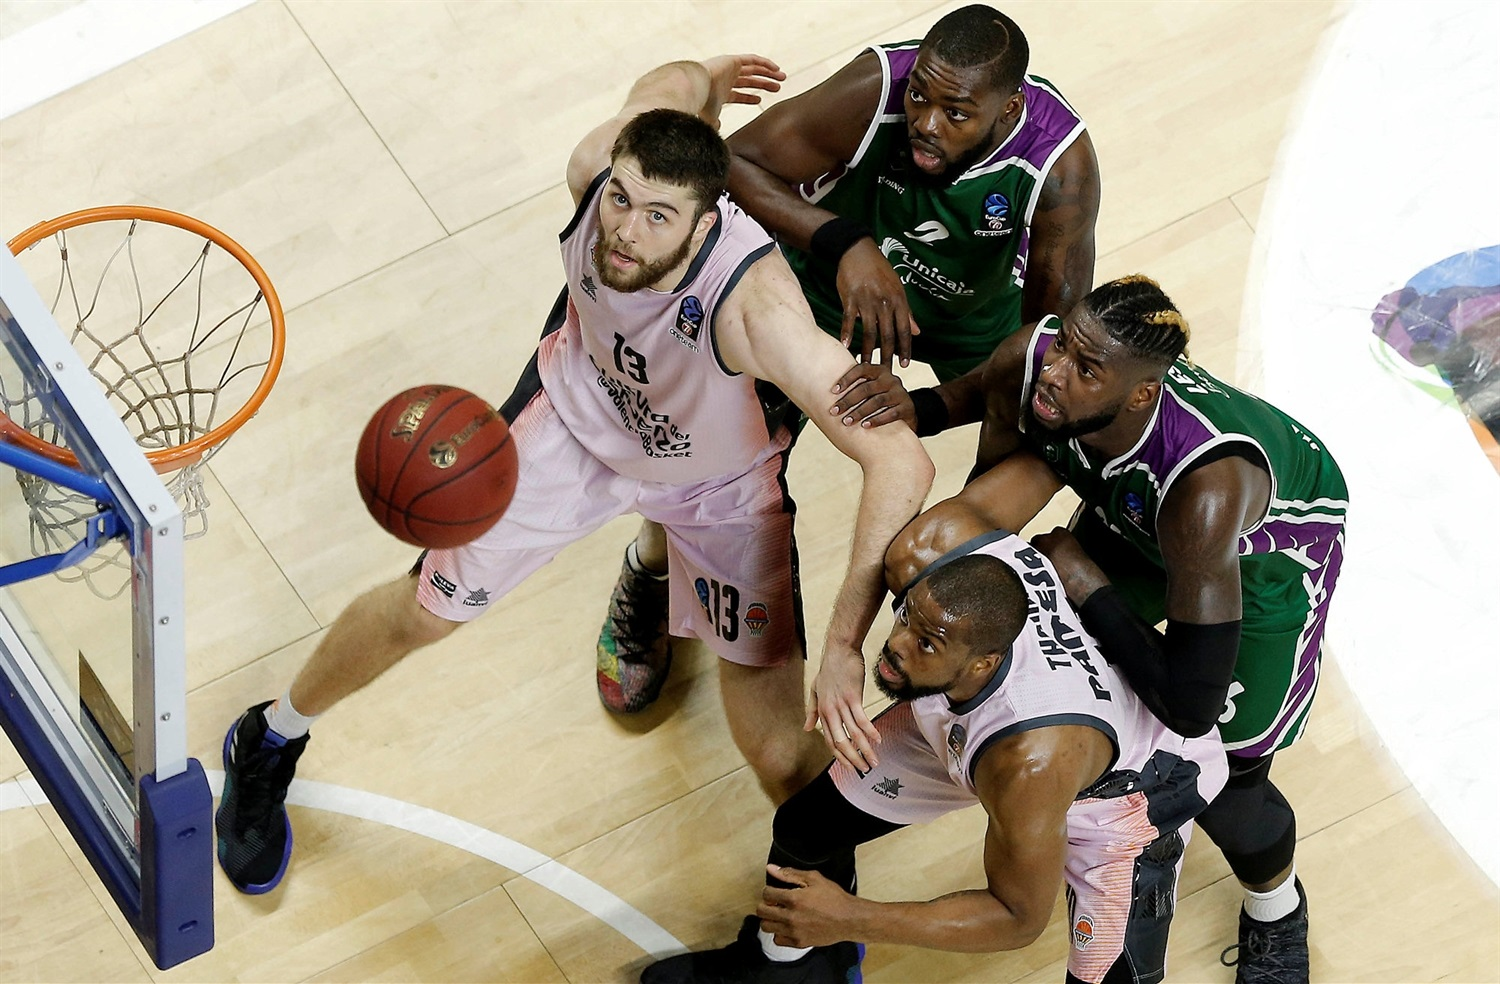 Mike Tobey - Valencia Basket (photo Unicaja - Mariano Pozo) - EC18